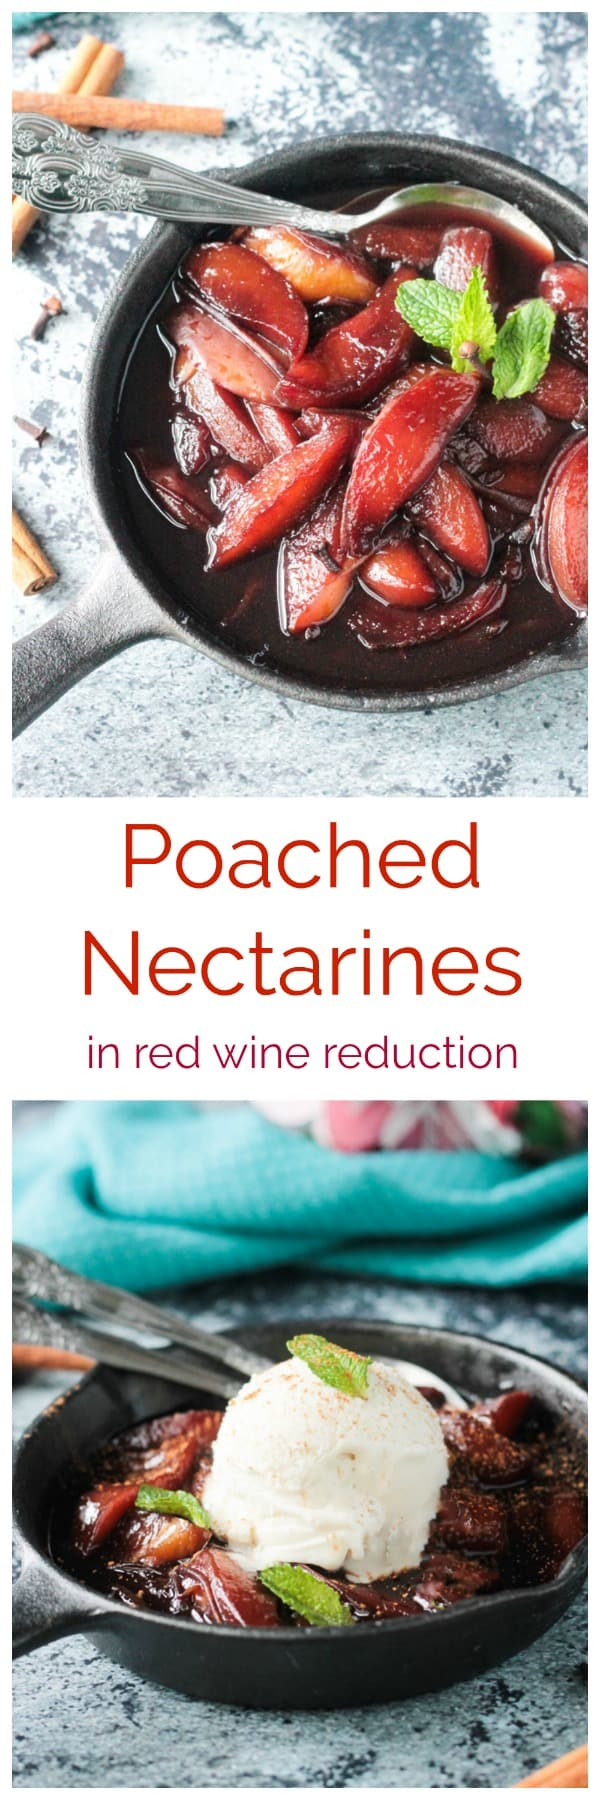 Poached Nectarines in red wine and spices from The Plantpower Way: Italia from Julie Piatt and Rich Roll. Elegant enough for entertaining, simple enough for a summer dessert any day of the week.#vegan #dessert #summer #nectarines #stonefruit #redwine #dairyfree